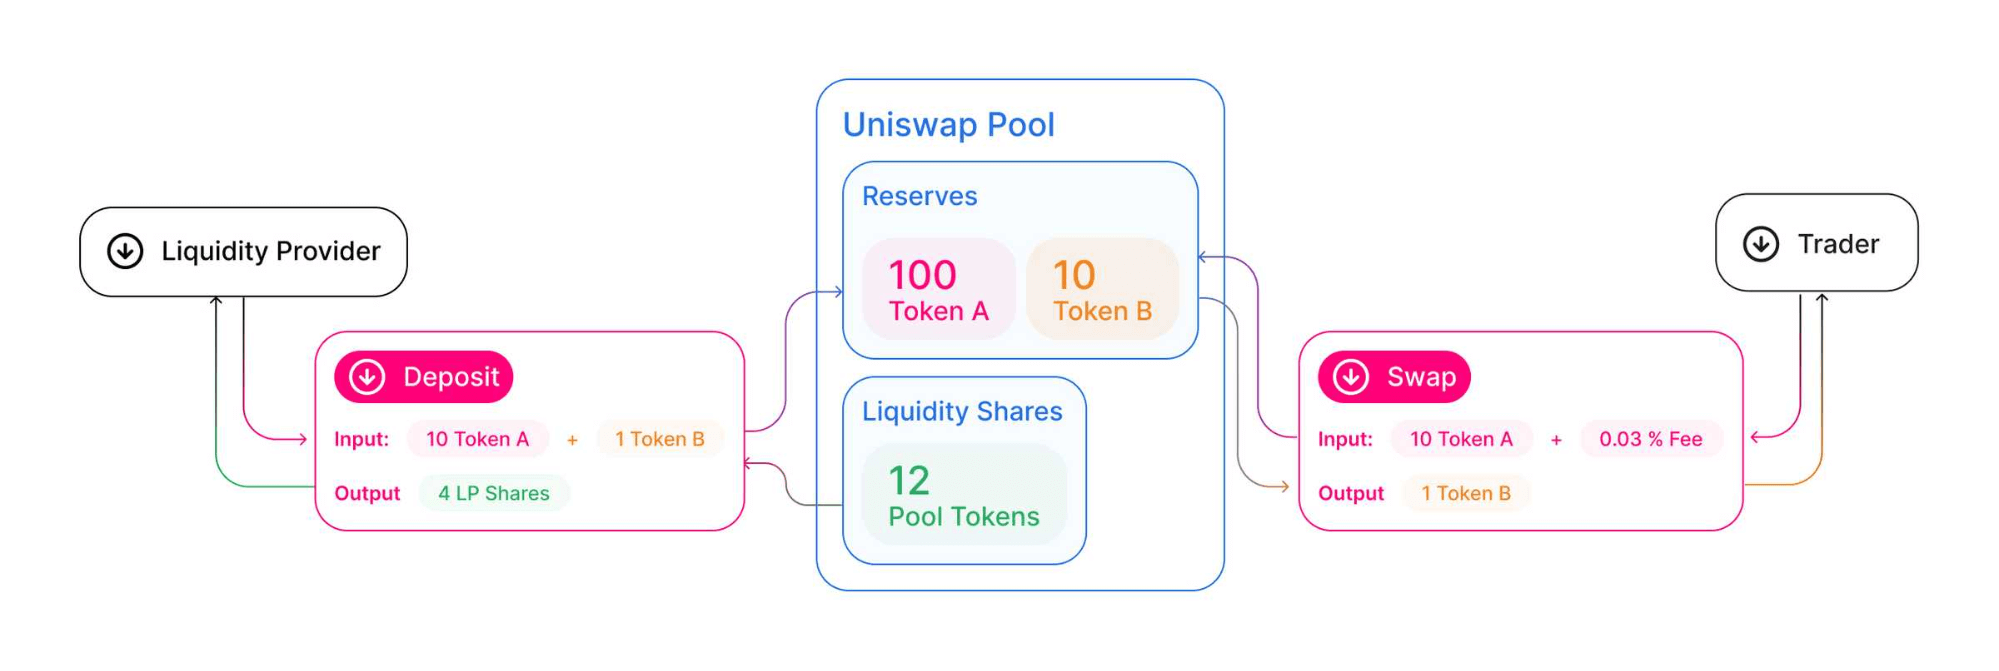 How are prices moving in Uniswap?